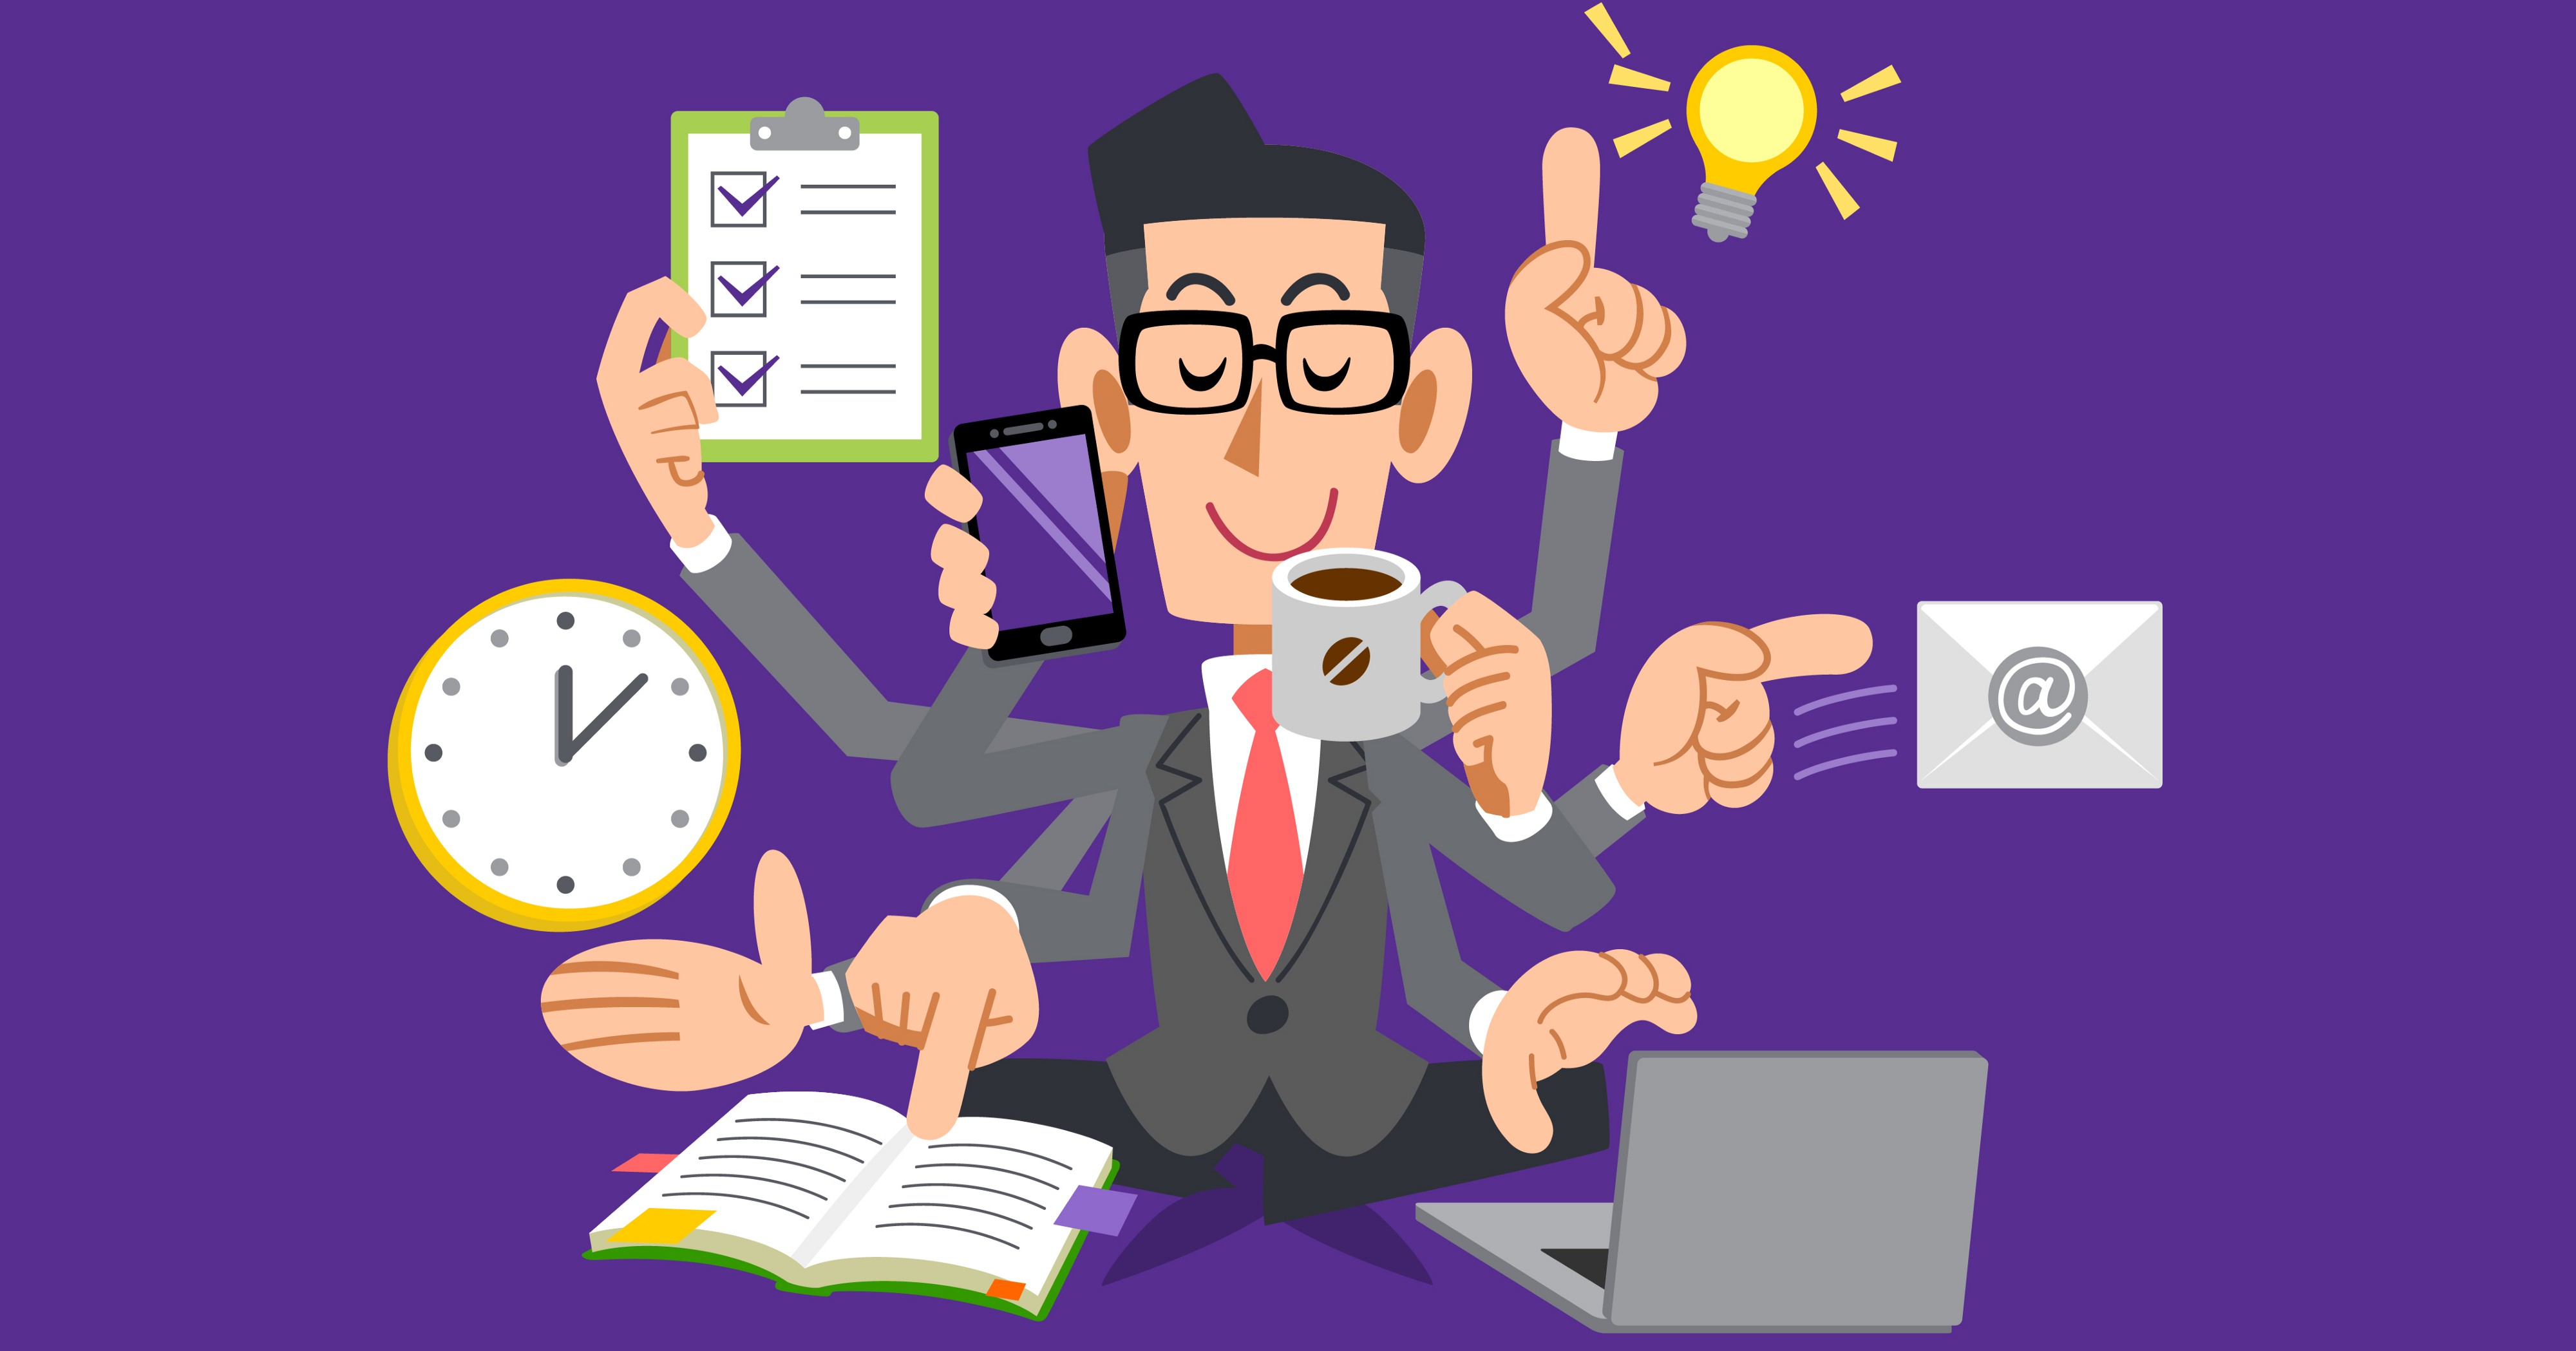 Manager clipart managerial role. Skills that make facility